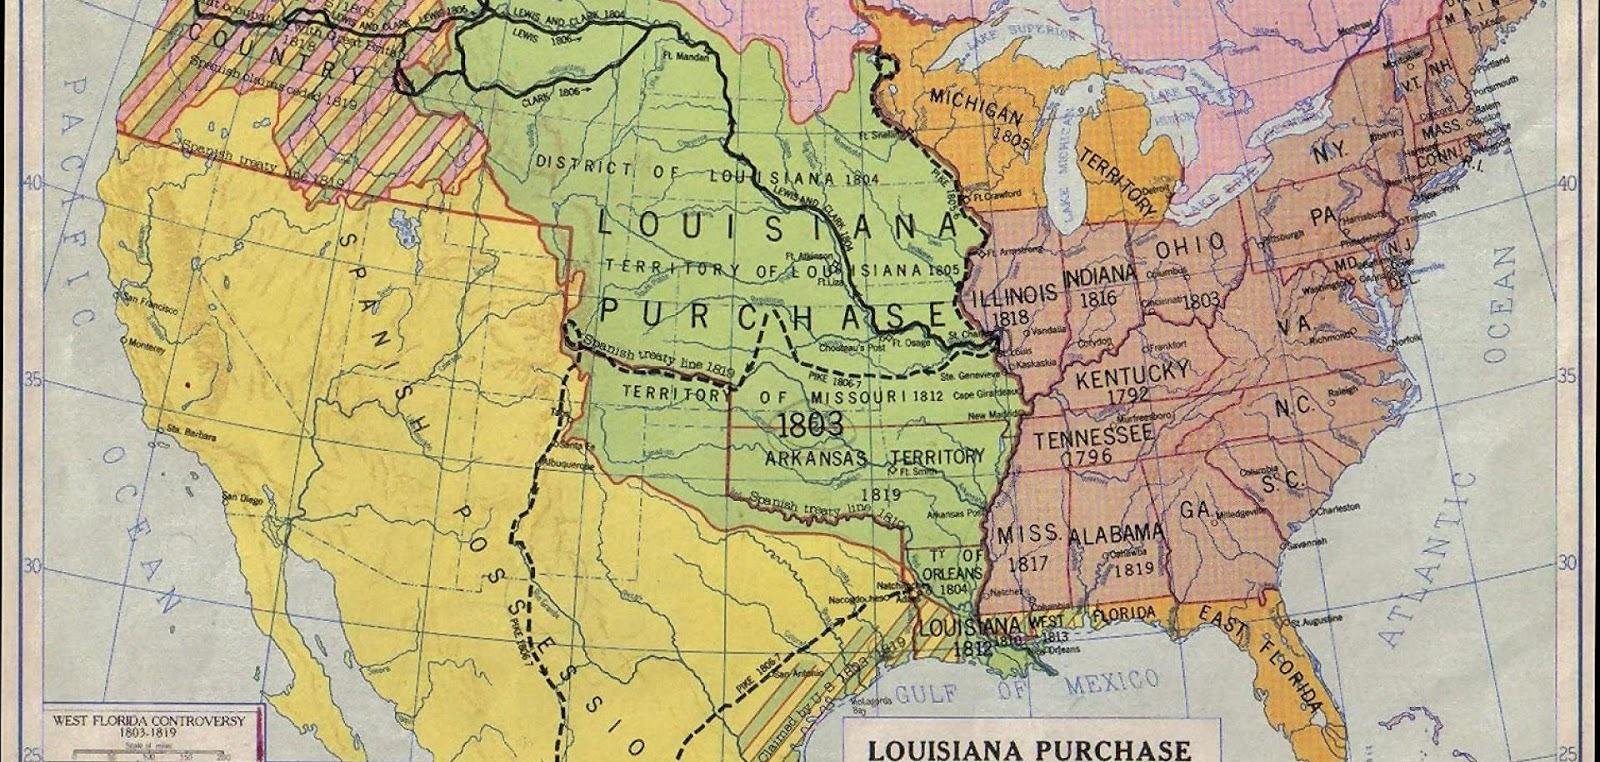 the louisiana purchase signed by president thomas jefferson in 1803